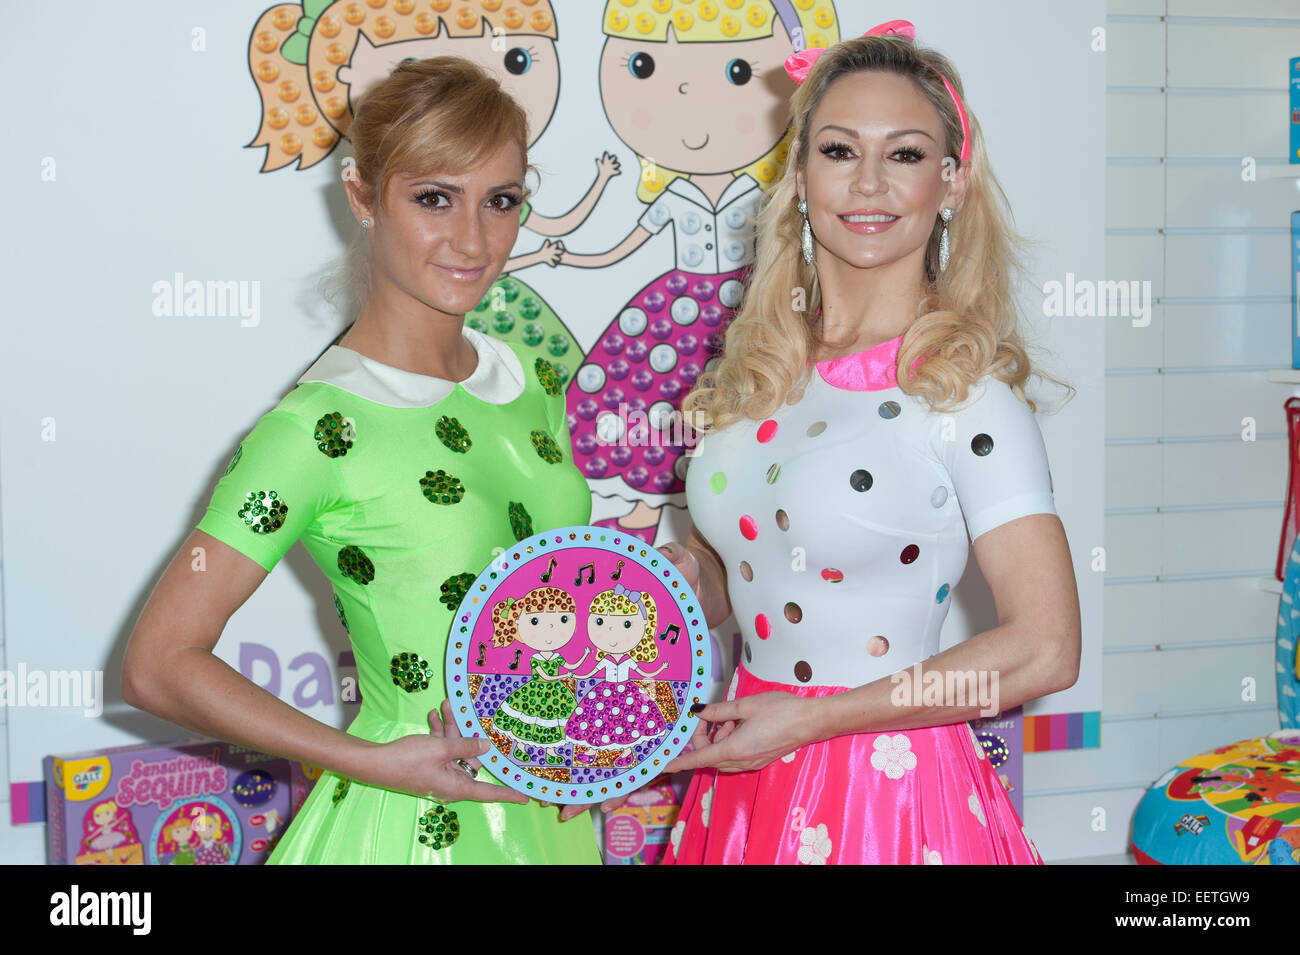 Strictly Come Dancing professional dancers, Aliona Vilani and Kristina Rihanoff launch a new toy for Galt at the - Stock Image